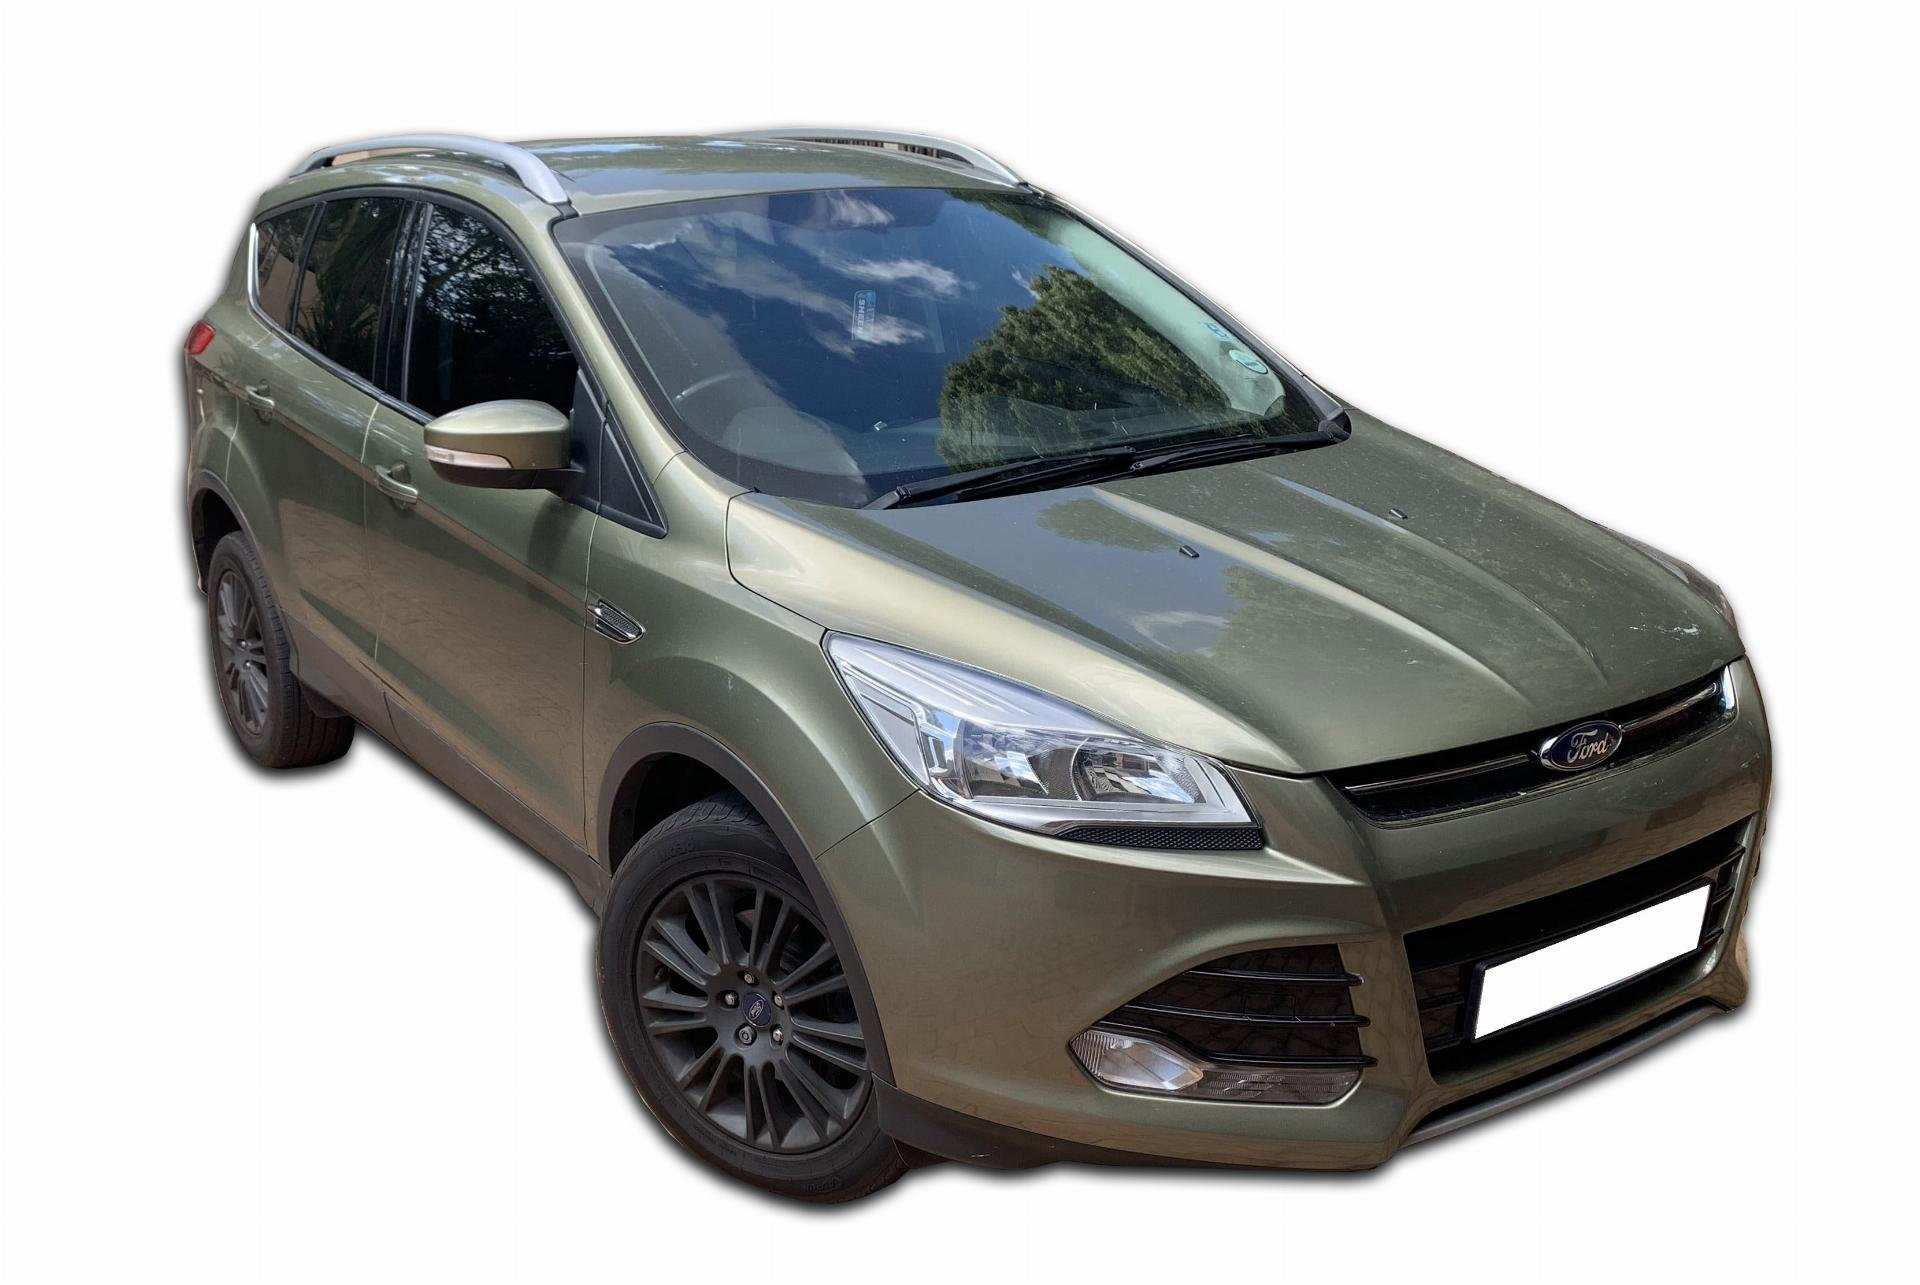 Ford Kuga 1.6 Ecoboost Trend FWD